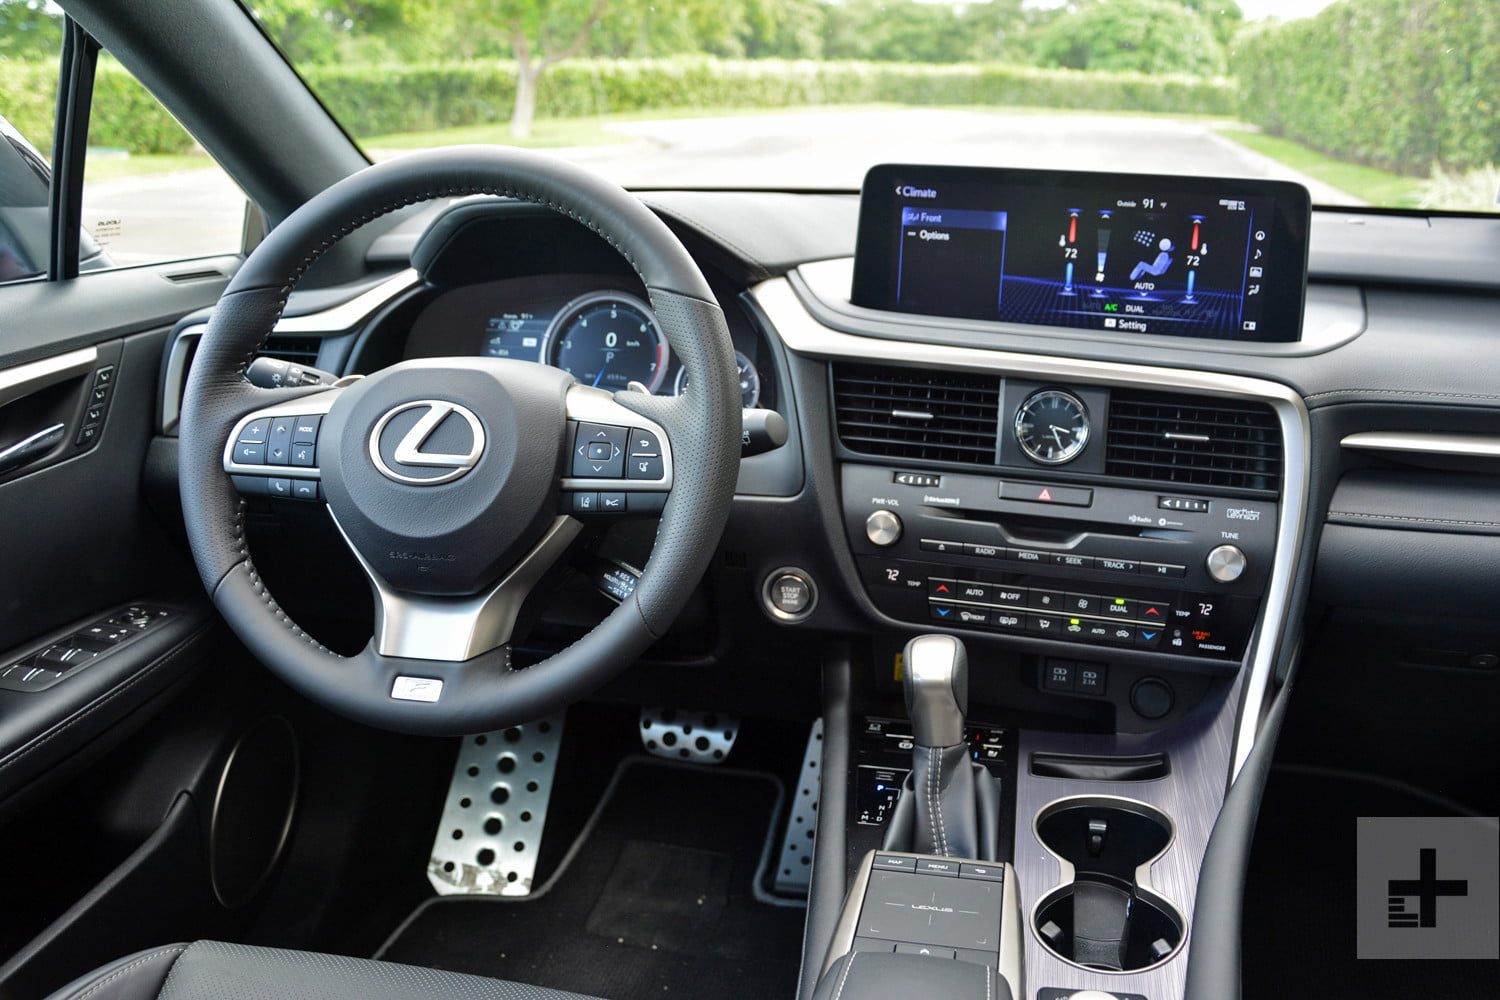 Exploring the past, present, and future of infotainment technology in the Lexus RX